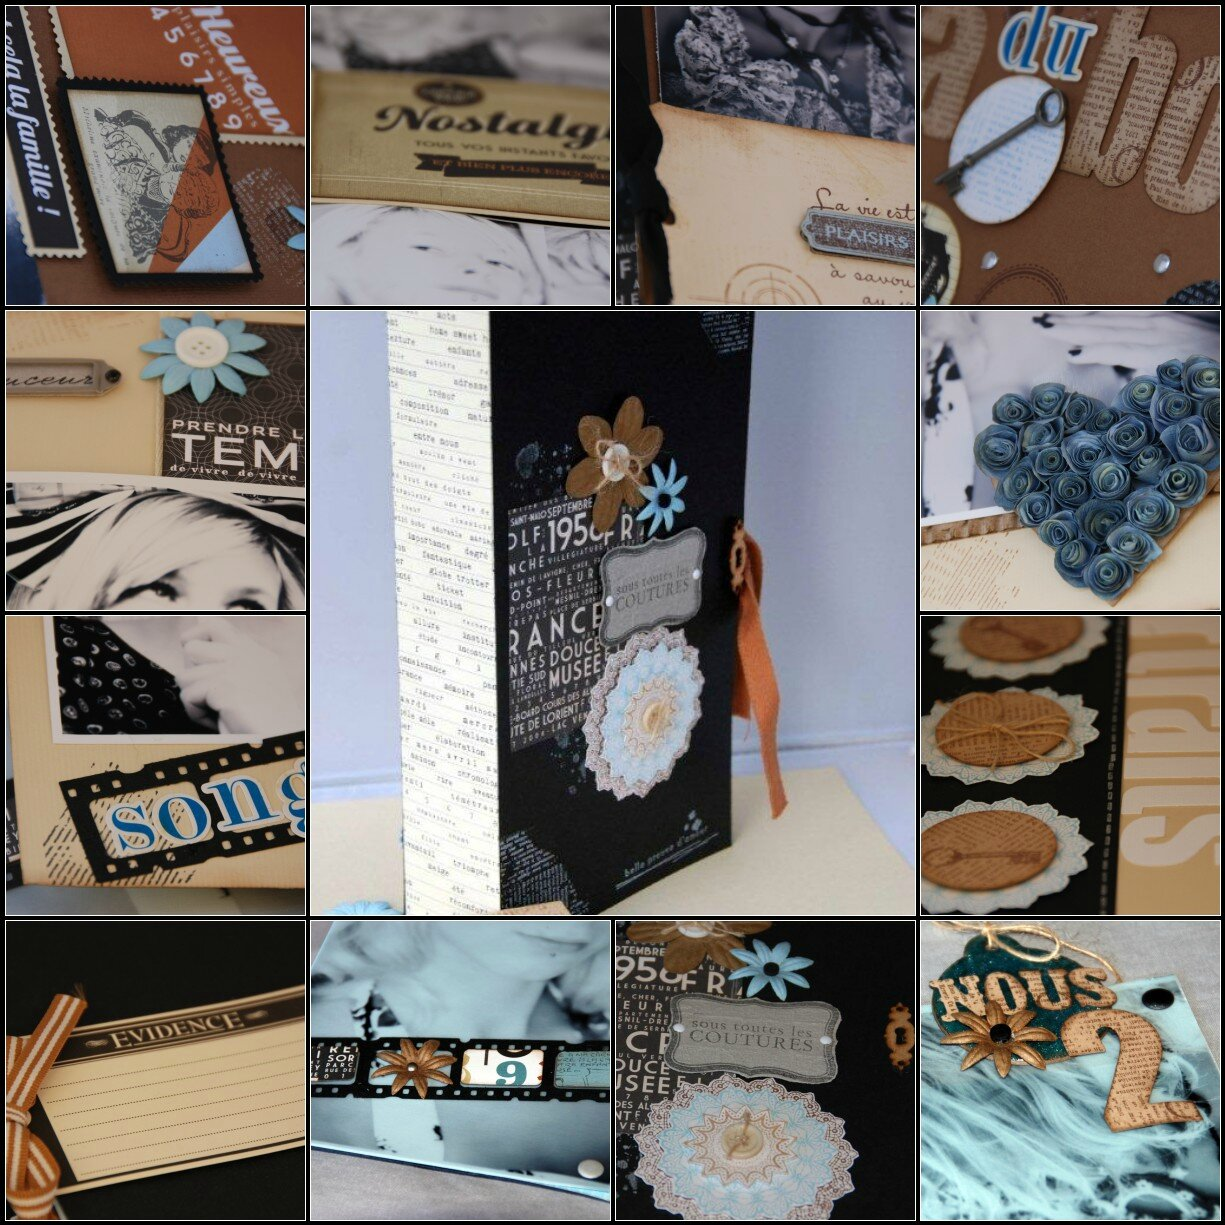 mosaique kit album novembre natpyllou